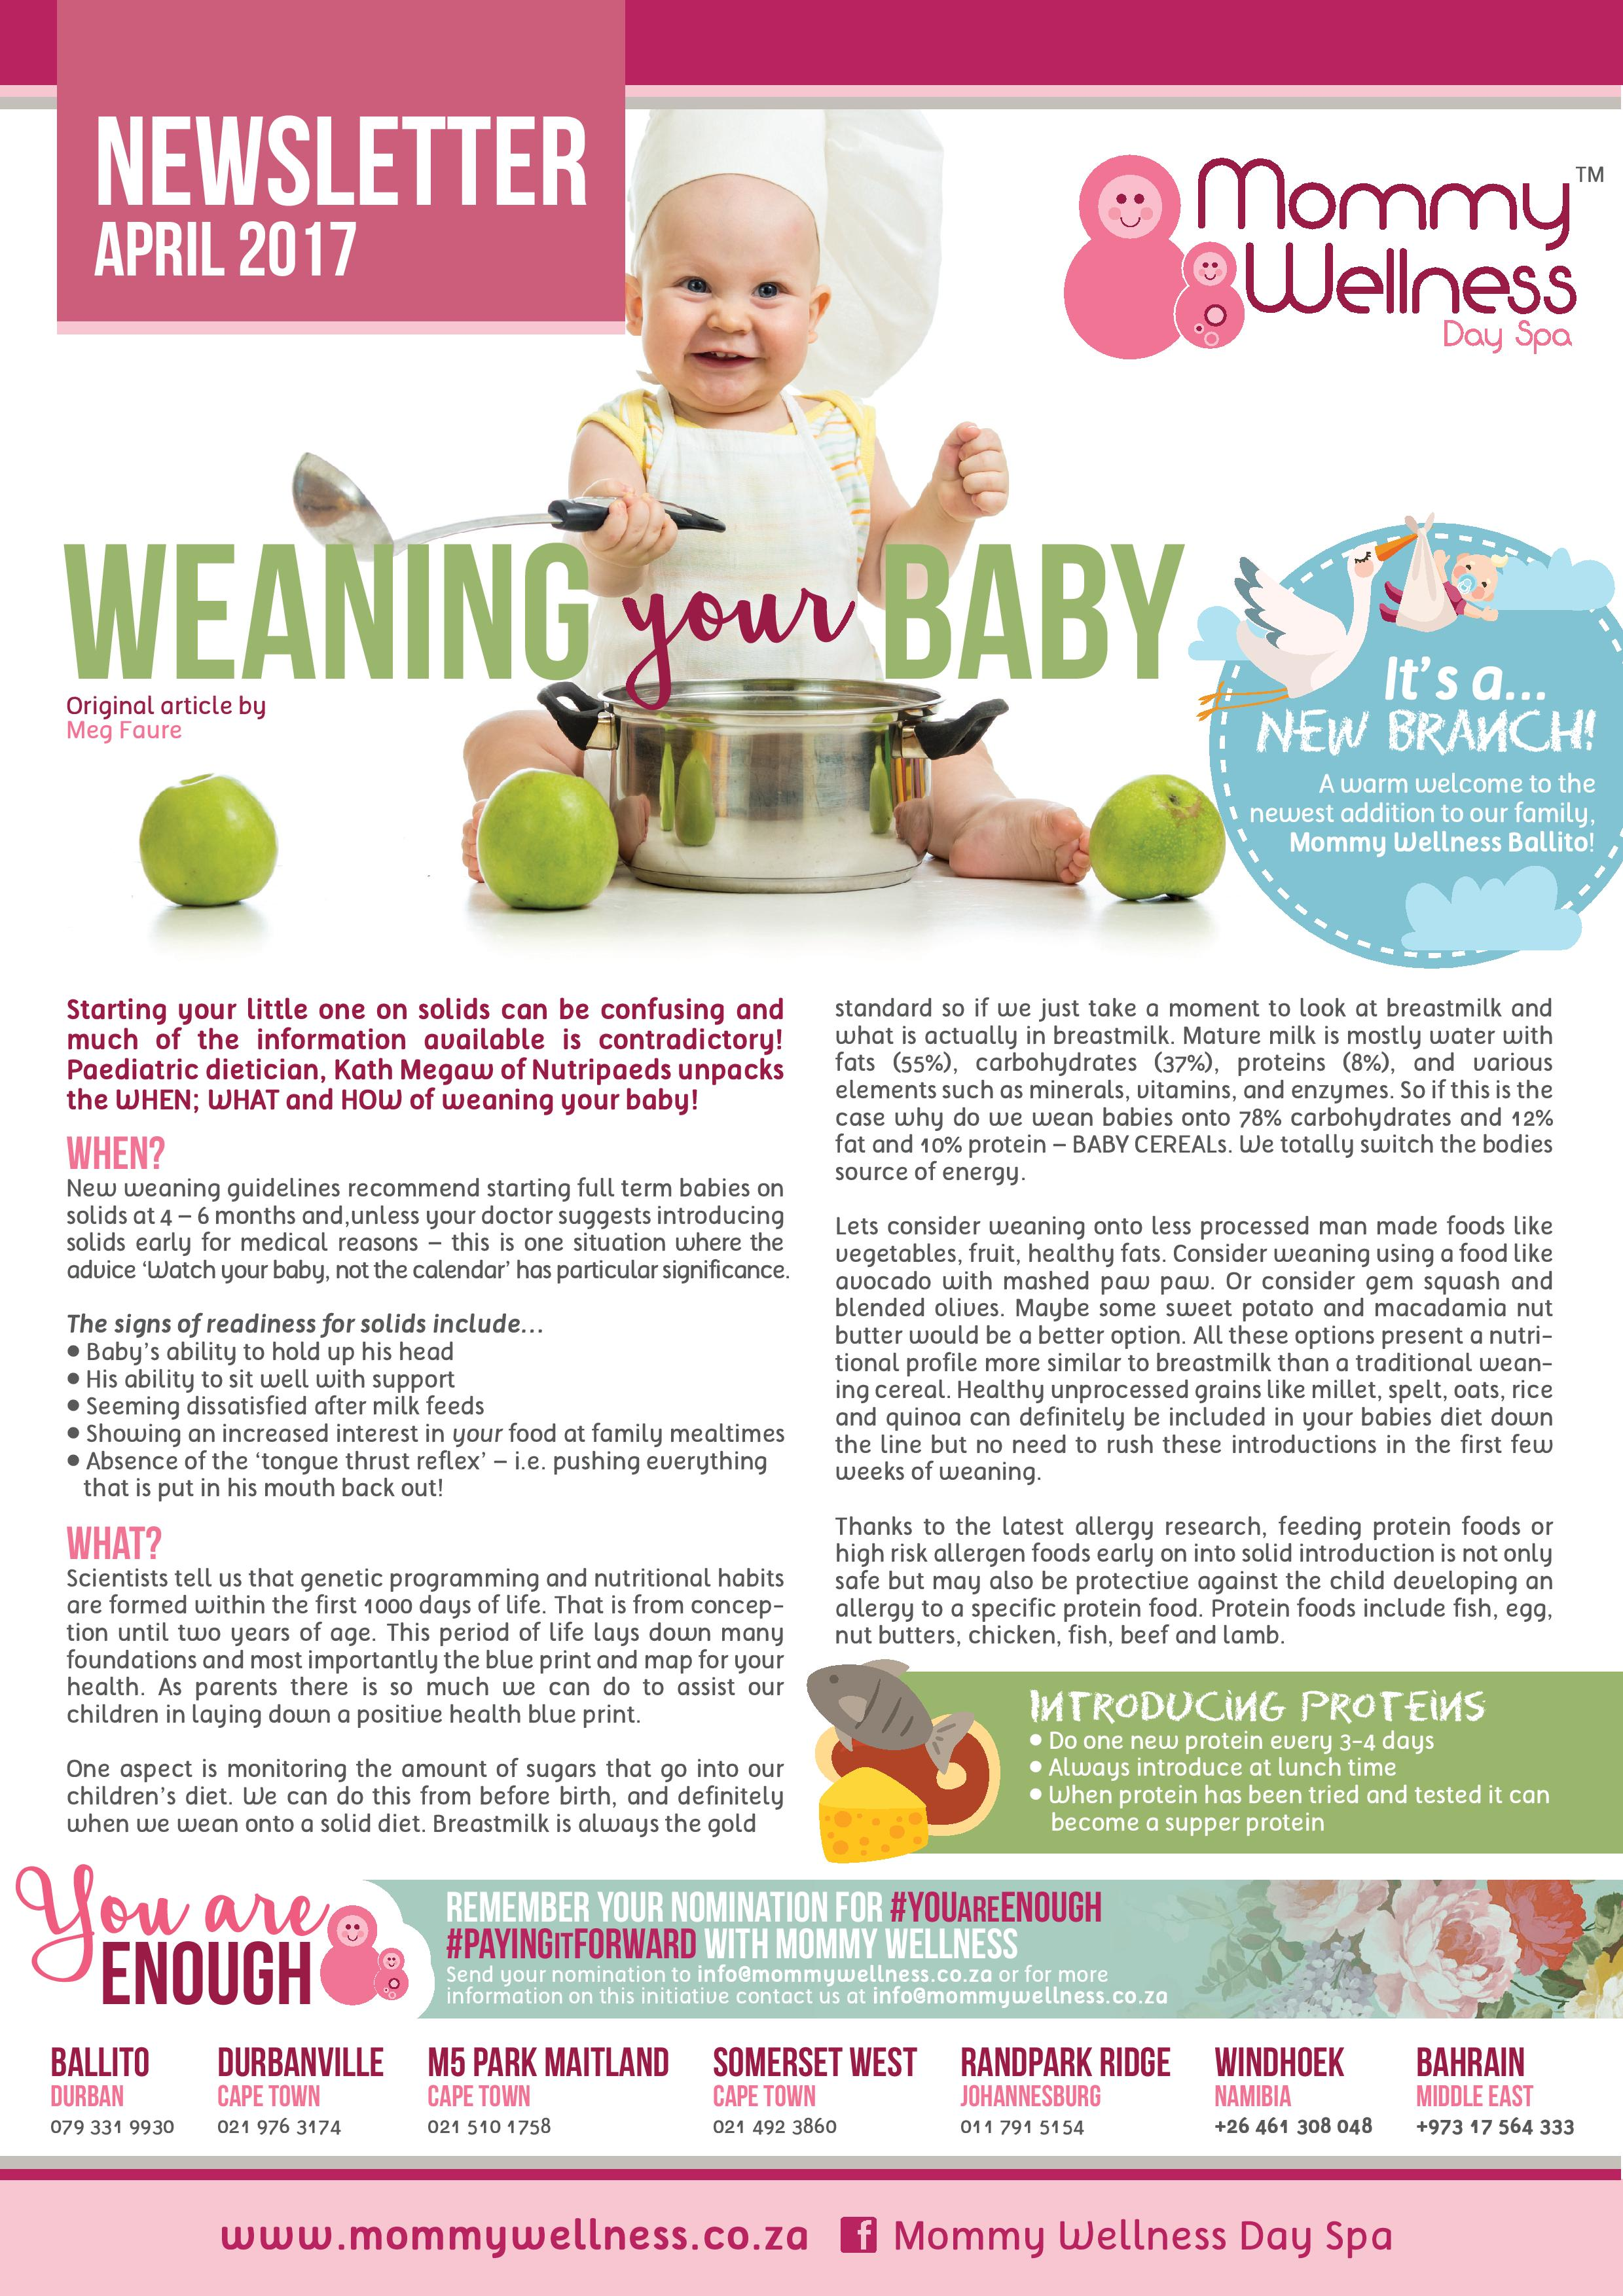 Mommy Wellness Newsletter April 2017